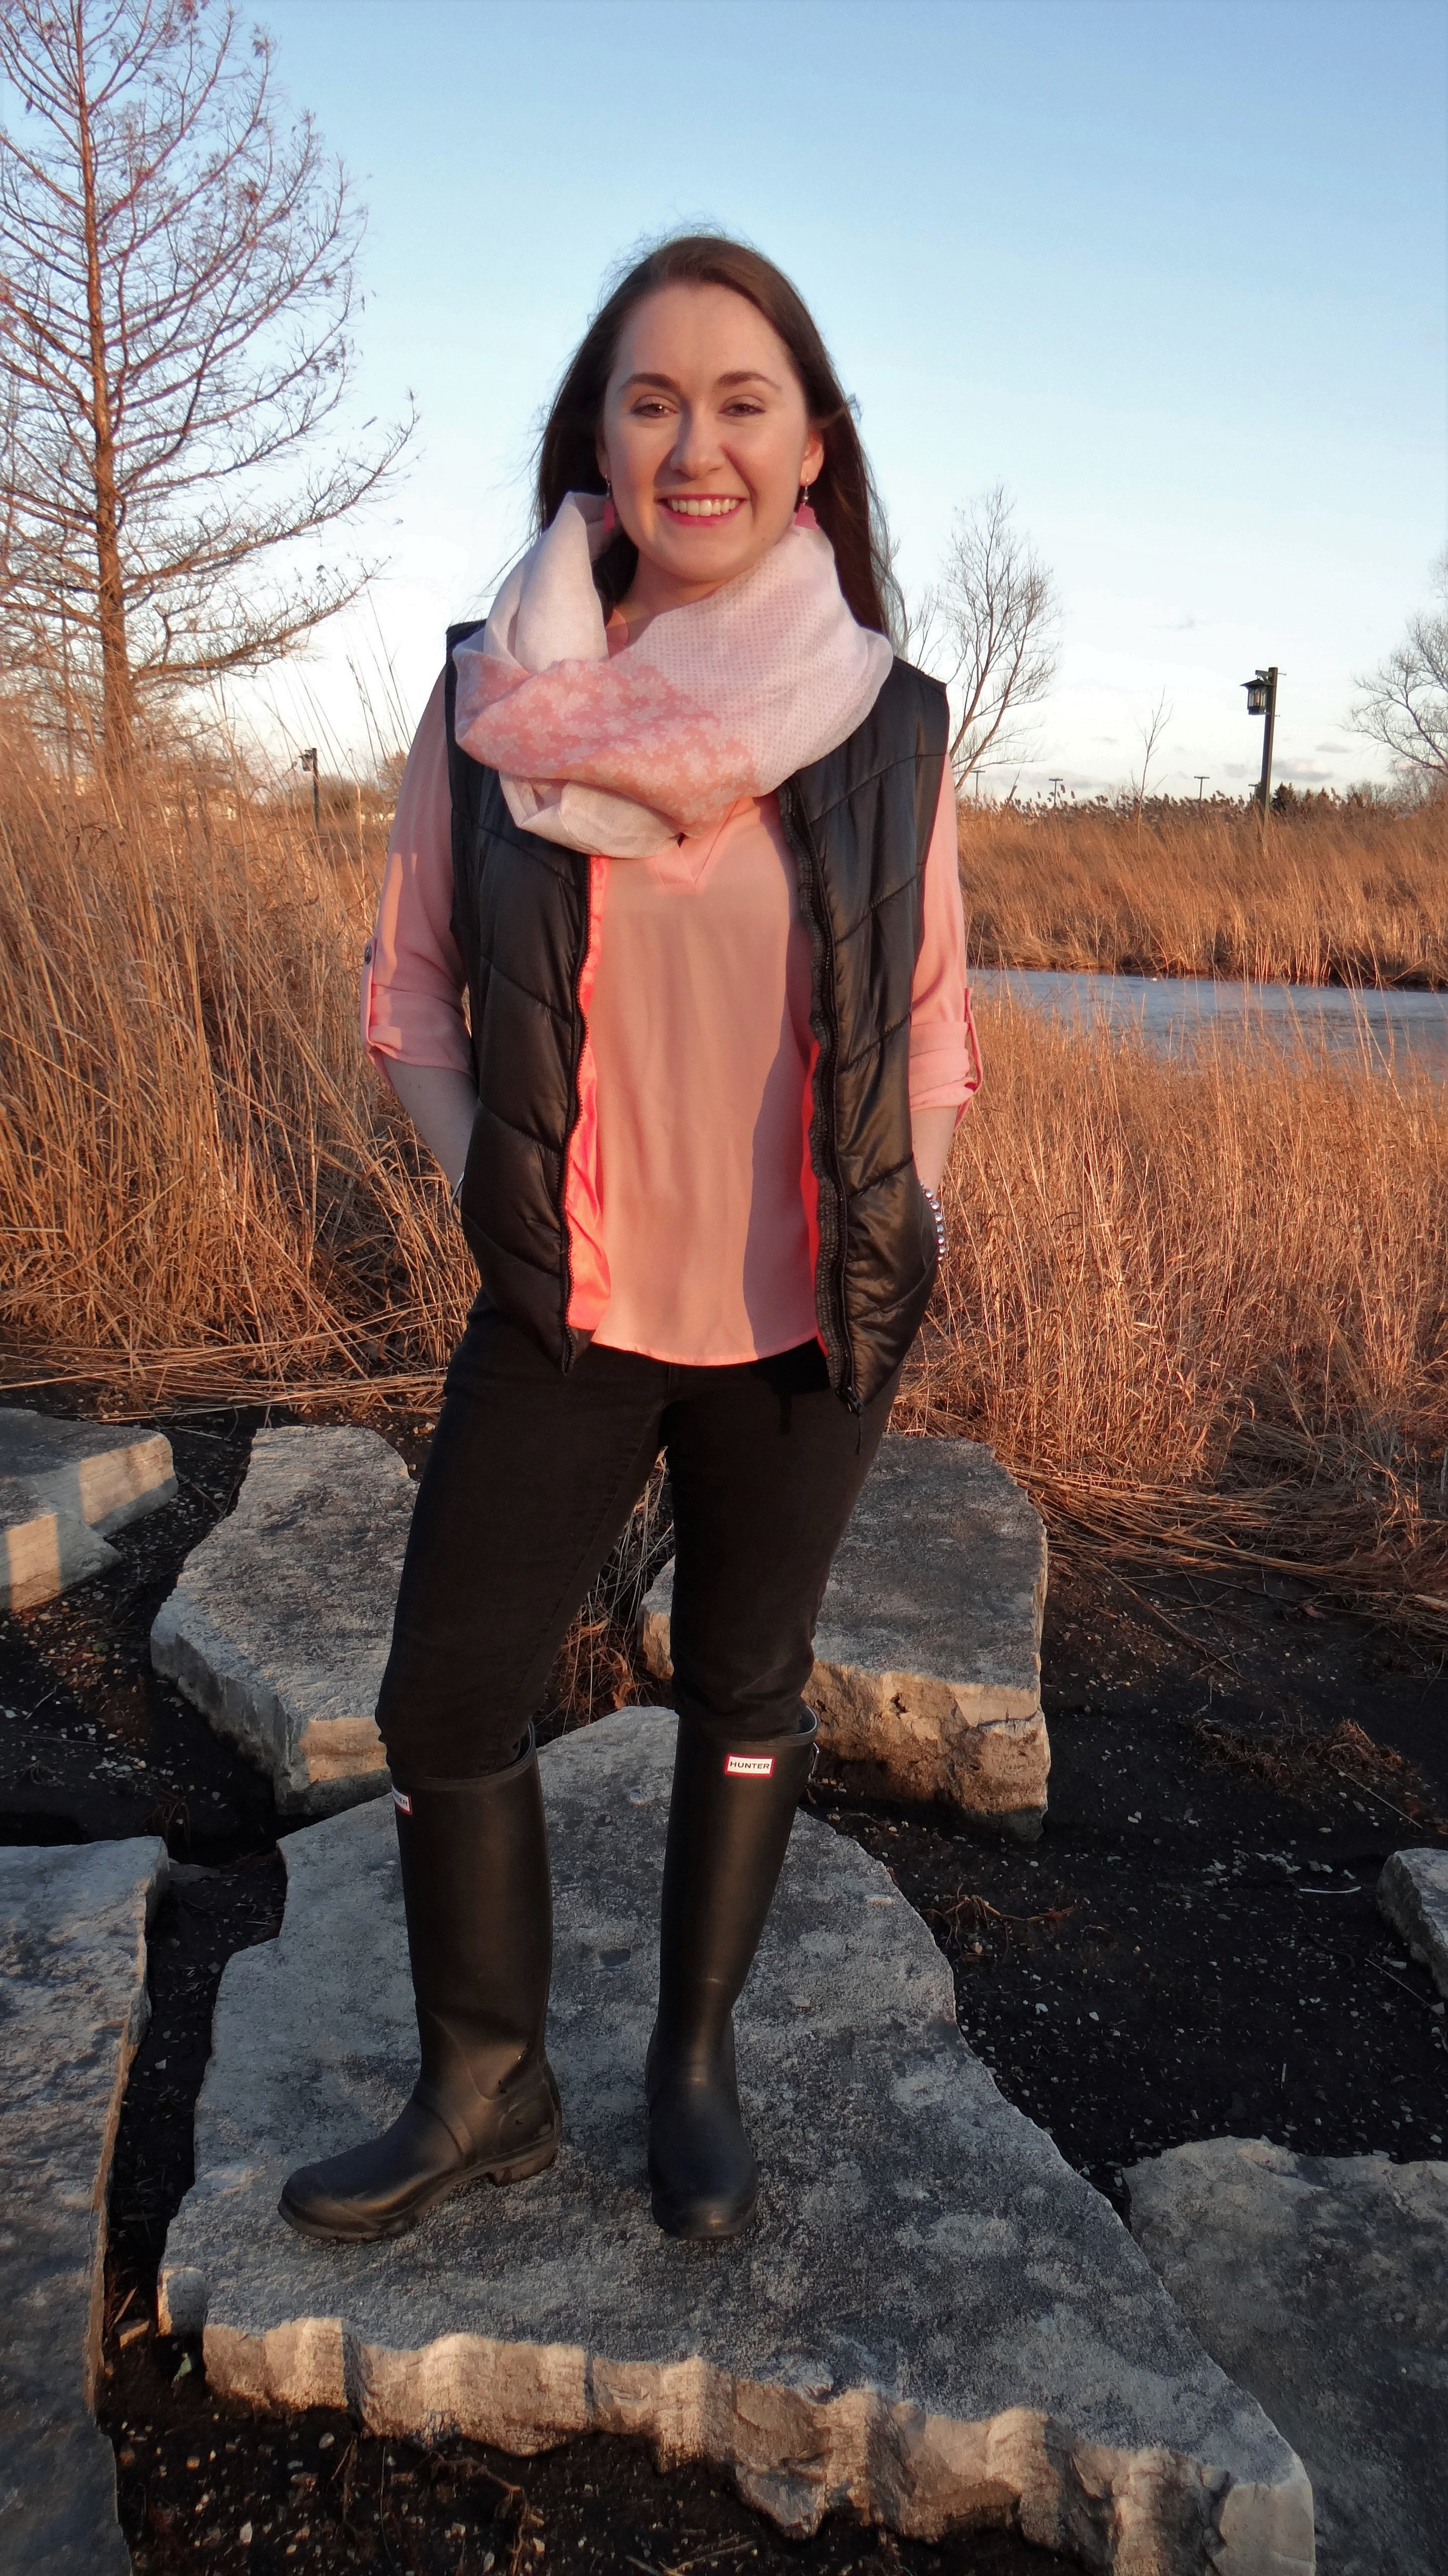 Model is wearing a pink shirt under a pink and black vest with black jeans and boots and silver accessories.